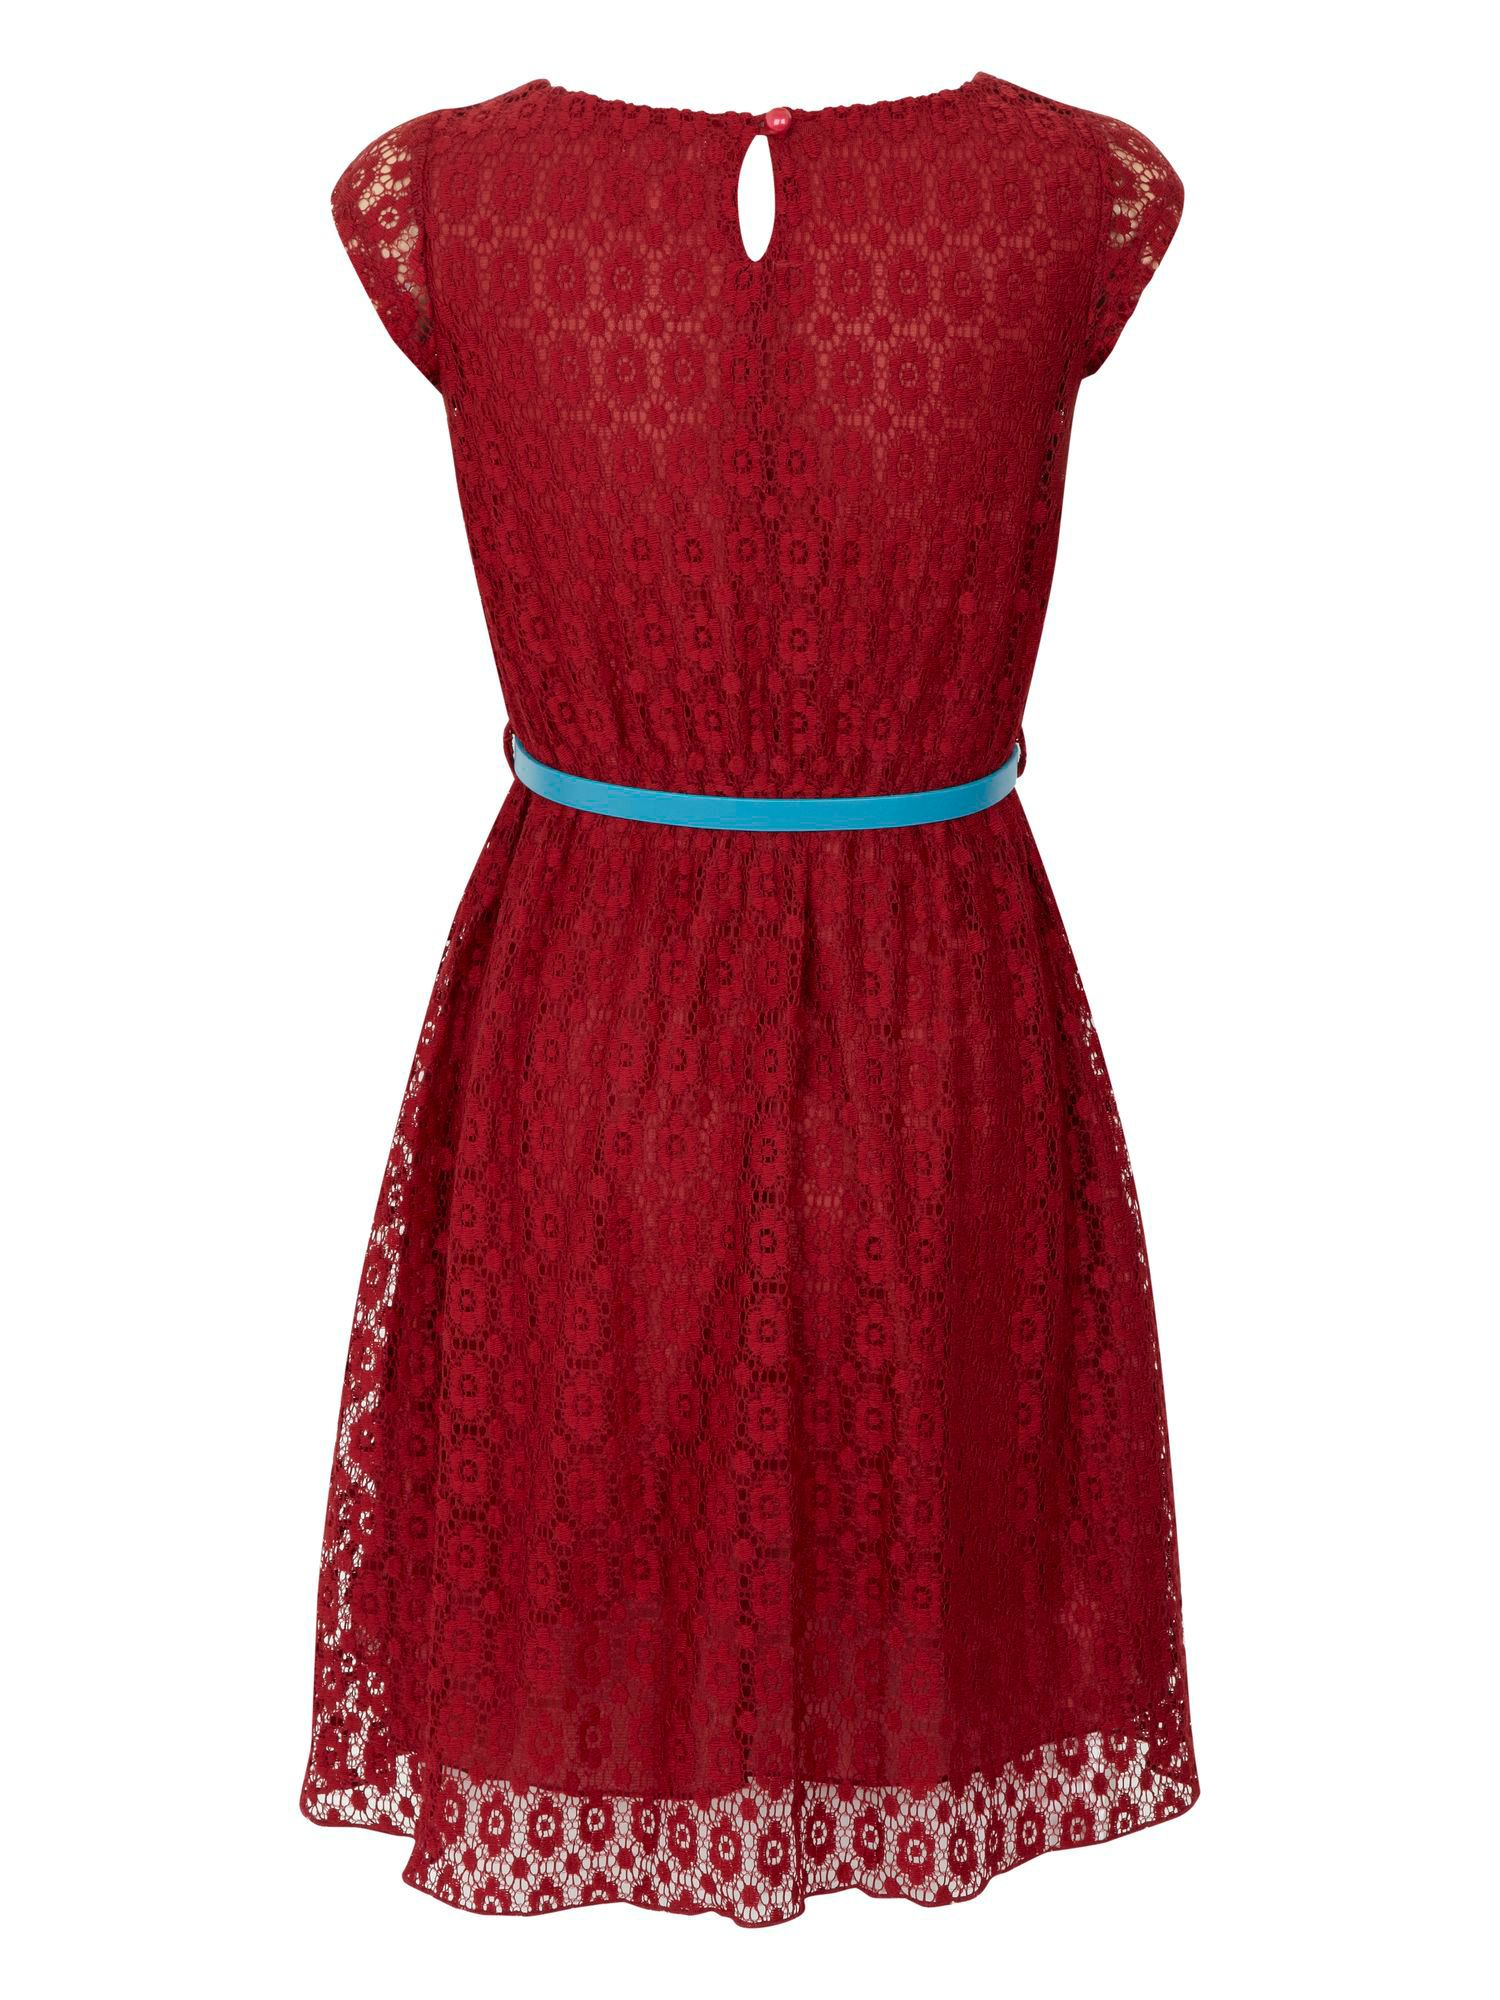 Girls lace heart dress